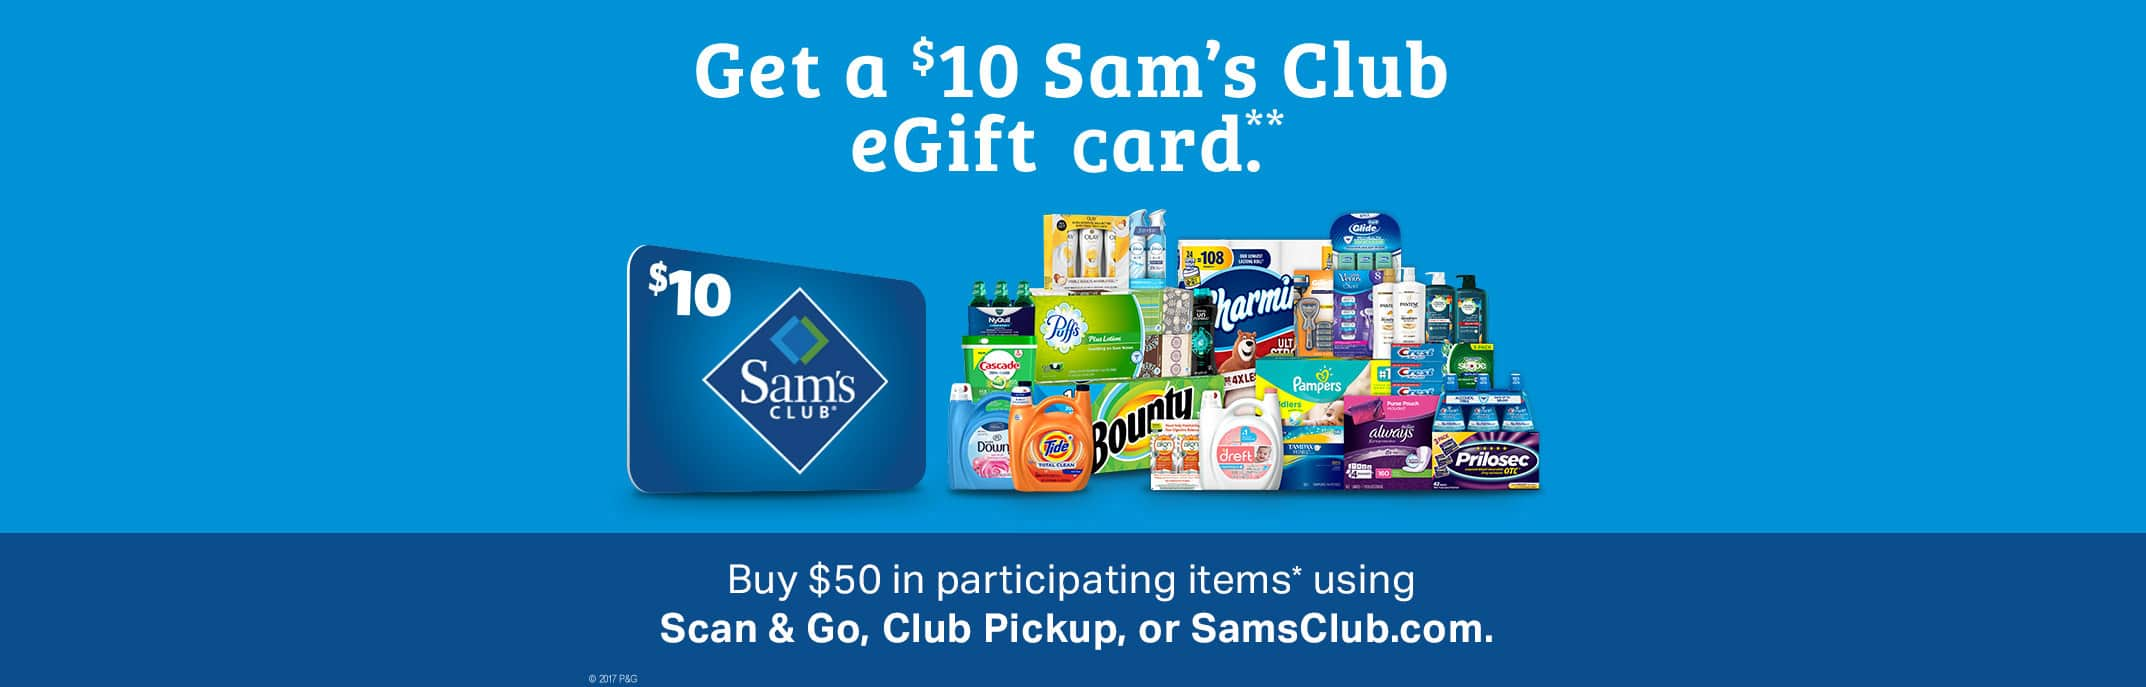 Sam's Club - Buy $50 in participating items get $10 eGift Card